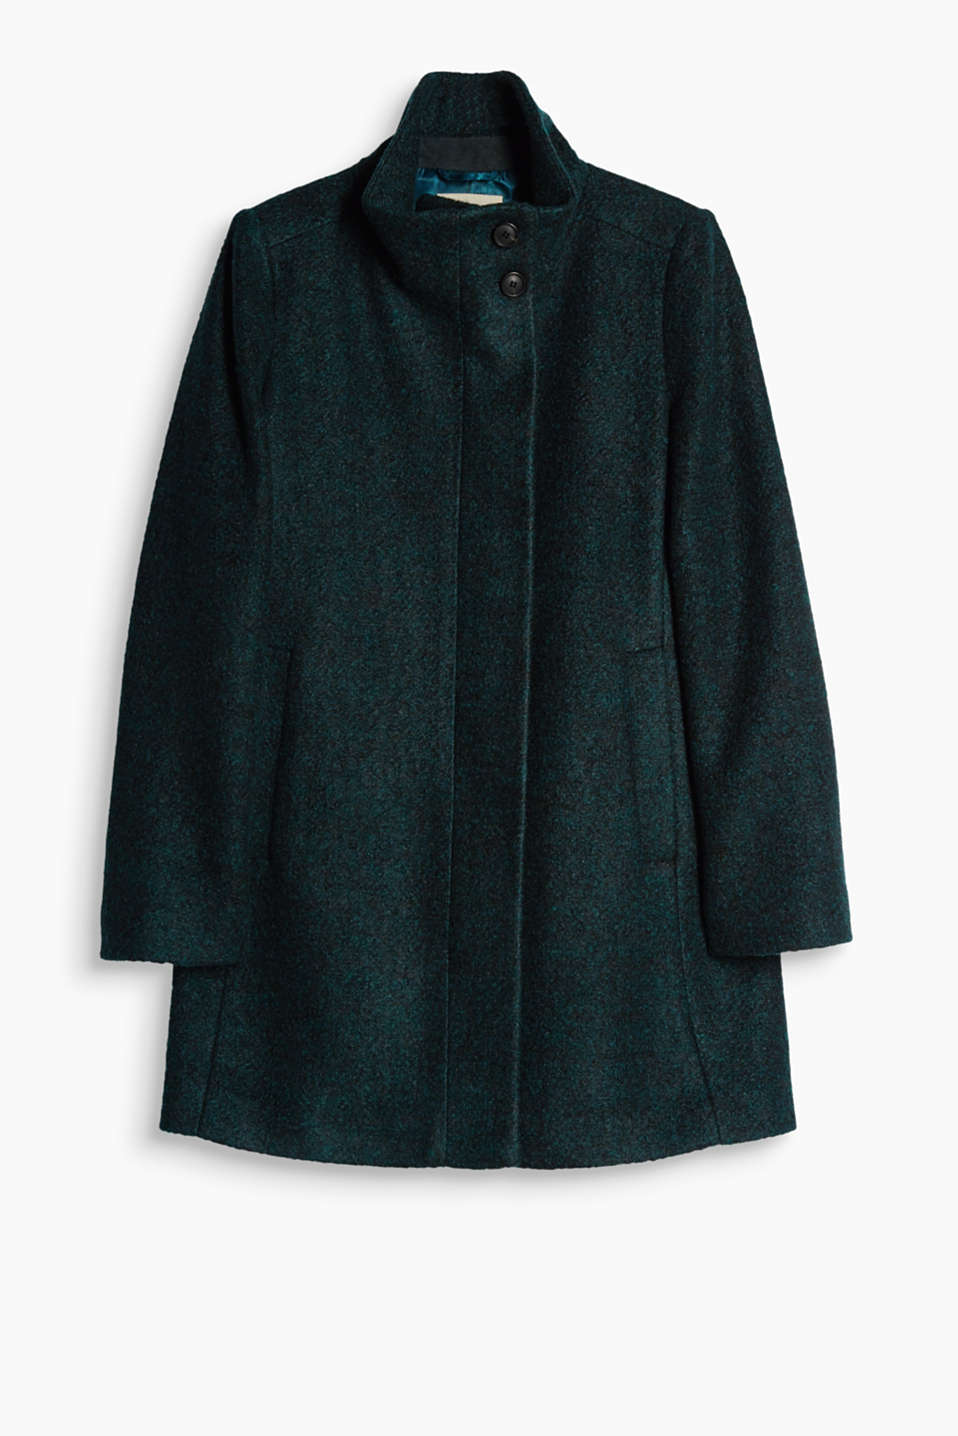 Warm and versatile: this fitted bouclé coat in a wool blend is your top companion for everyday wear!